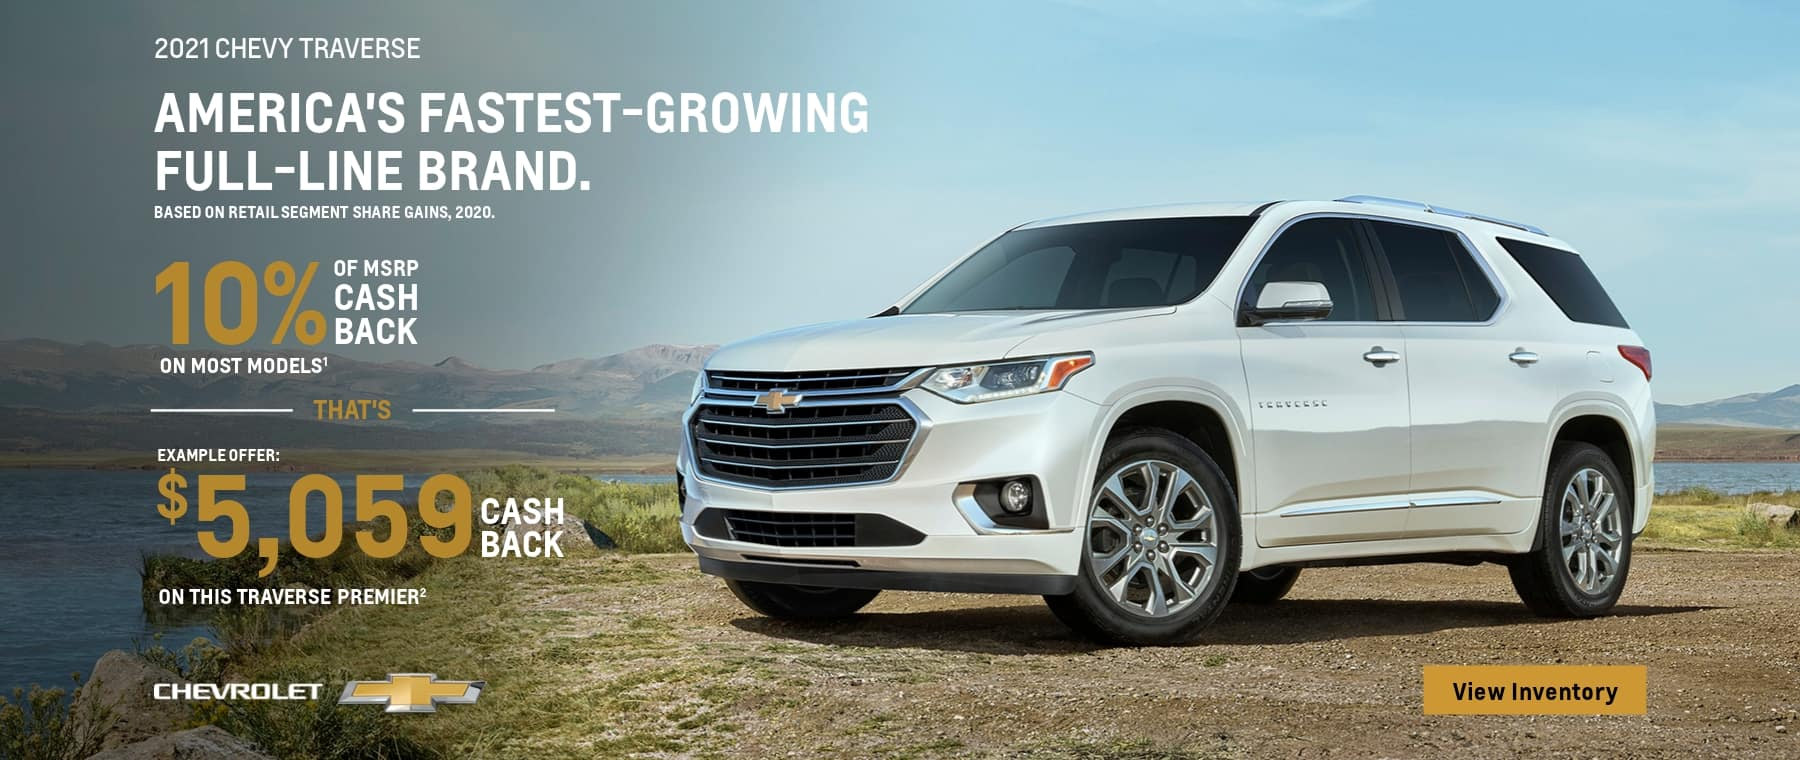 2021 chevy traverse example offer: of msrp cash that's $5,059 cash back chevrolet on most models on this traverse premier view inventory